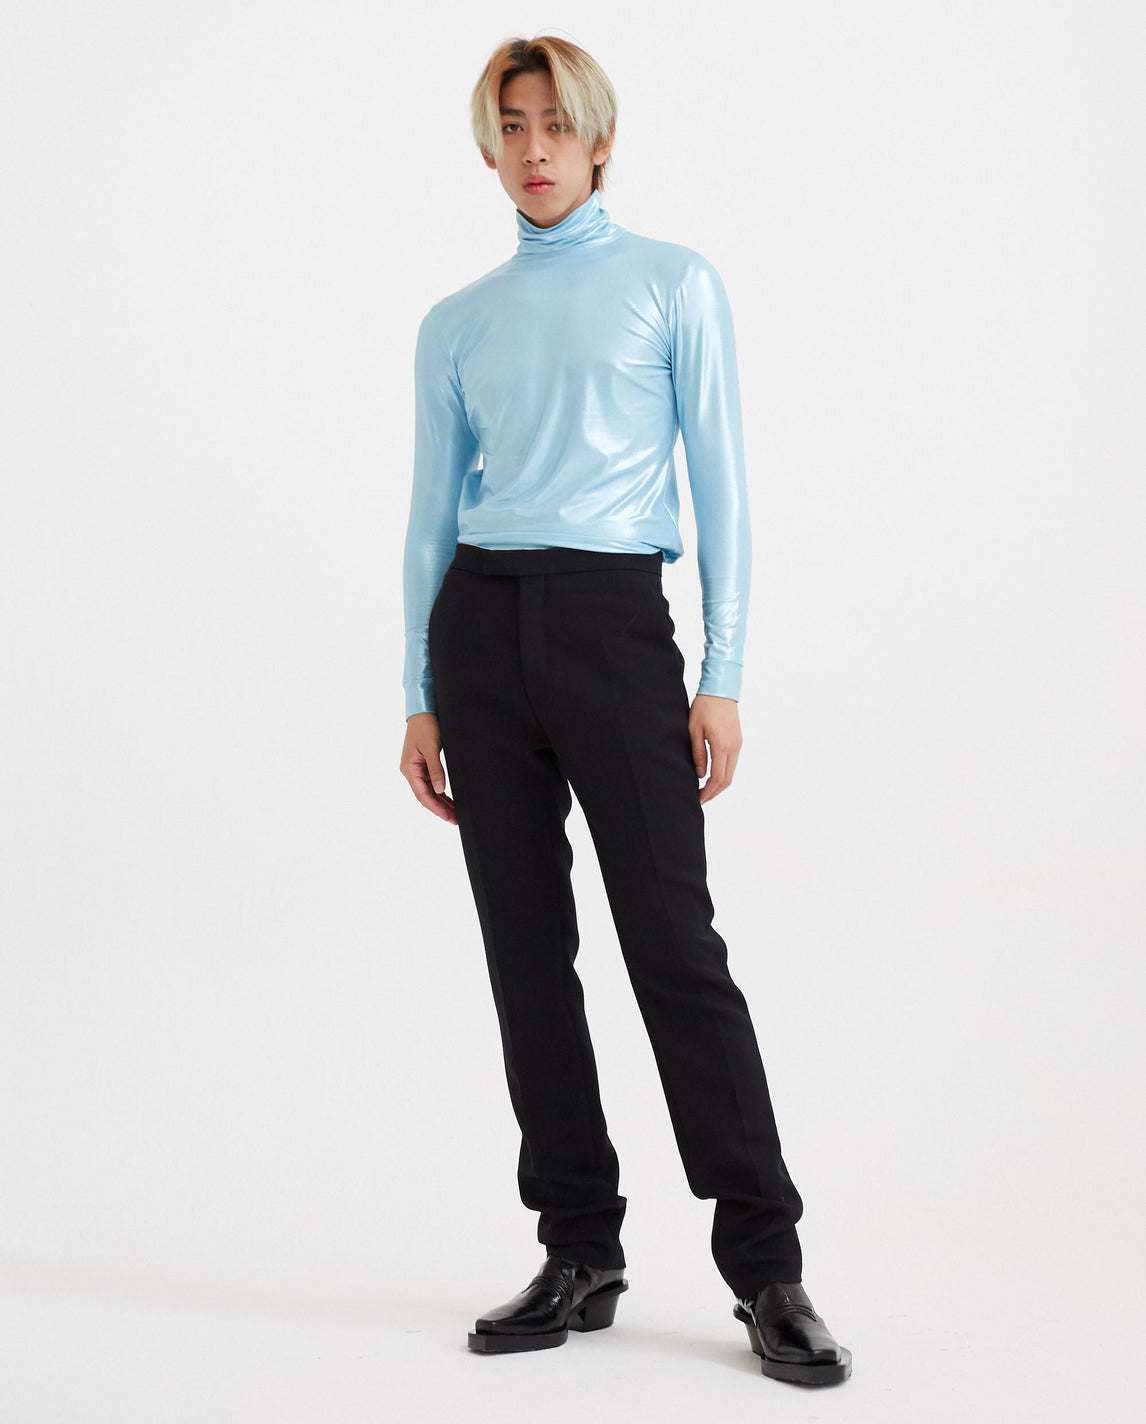 Sous Pull with Standing Collar - Blue MENS RAF SIMONS